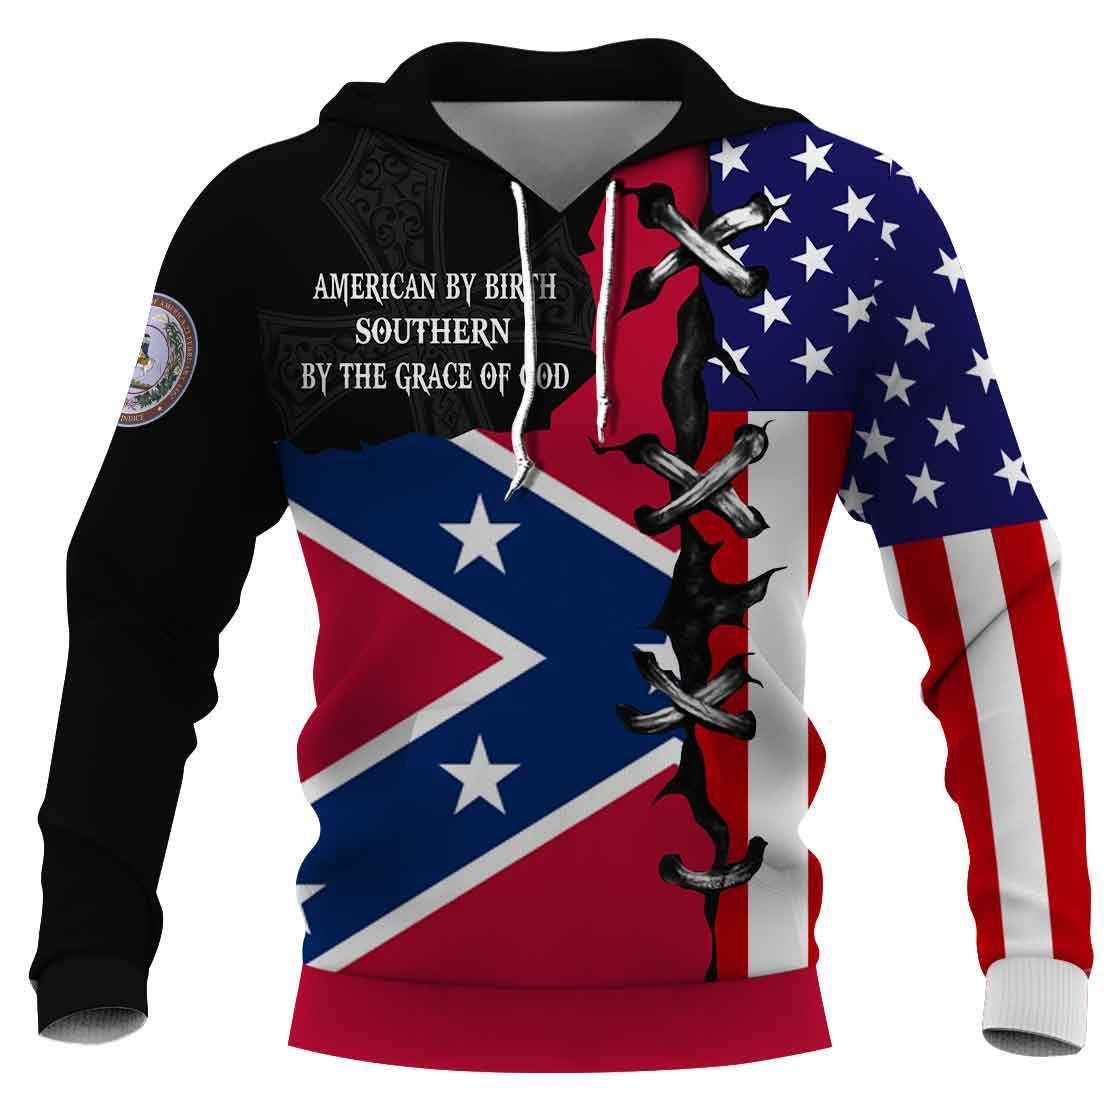 American by birth southern by the grace of god full printing shirtAmerican by birth southern by the grace of god full printing hoodie 1